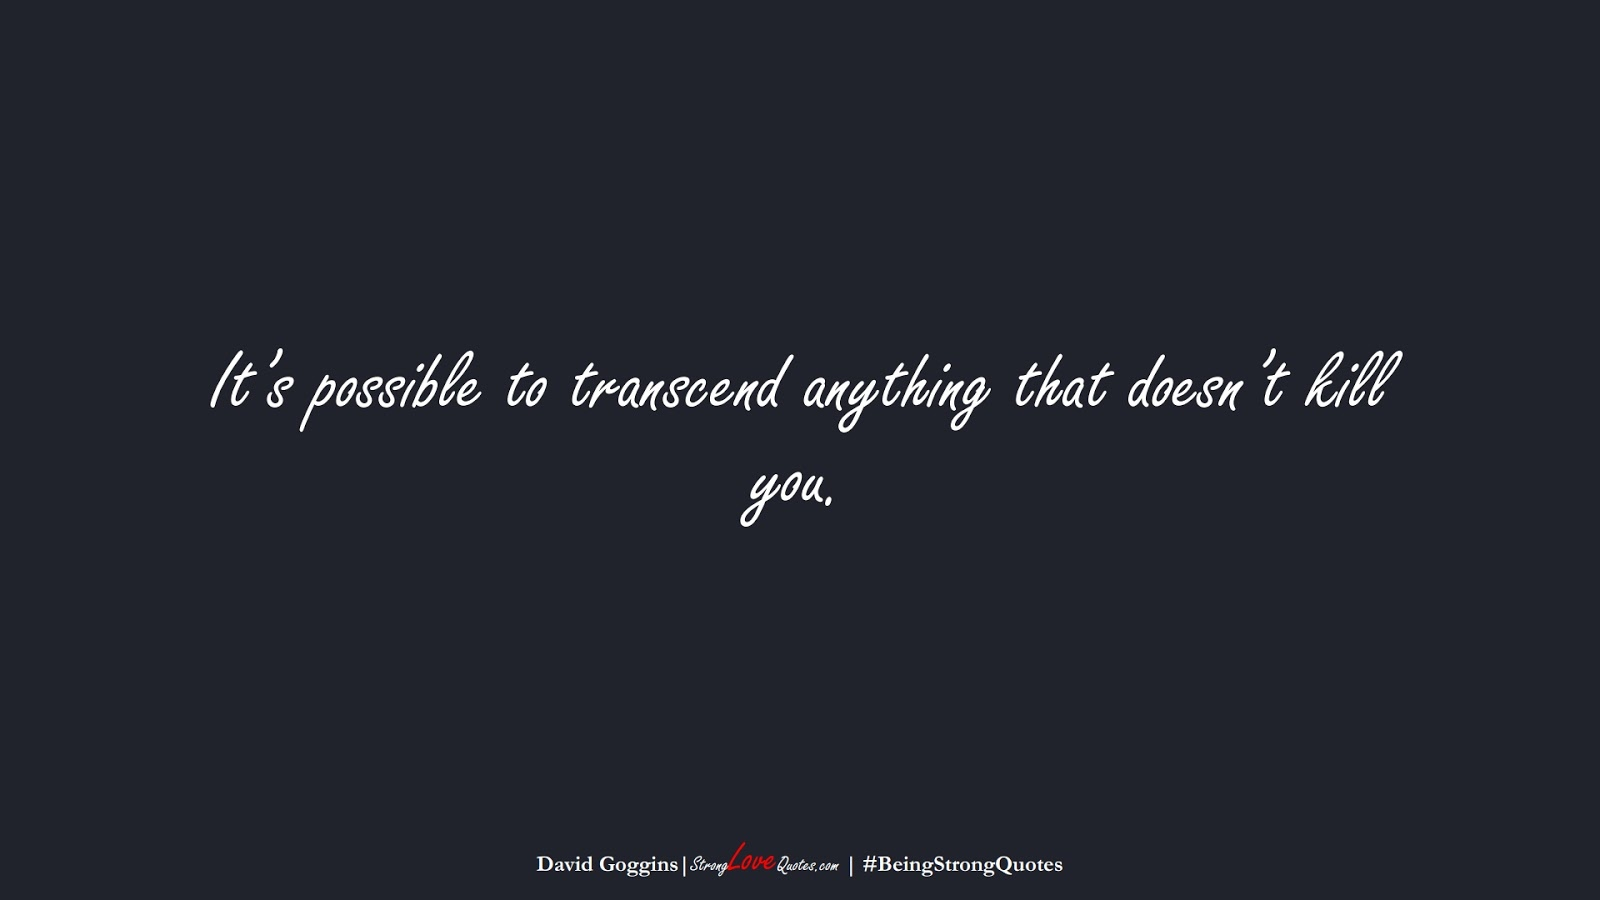 It's possible to transcend anything that doesn't kill you. (David Goggins);  #BeingStrongQuotes